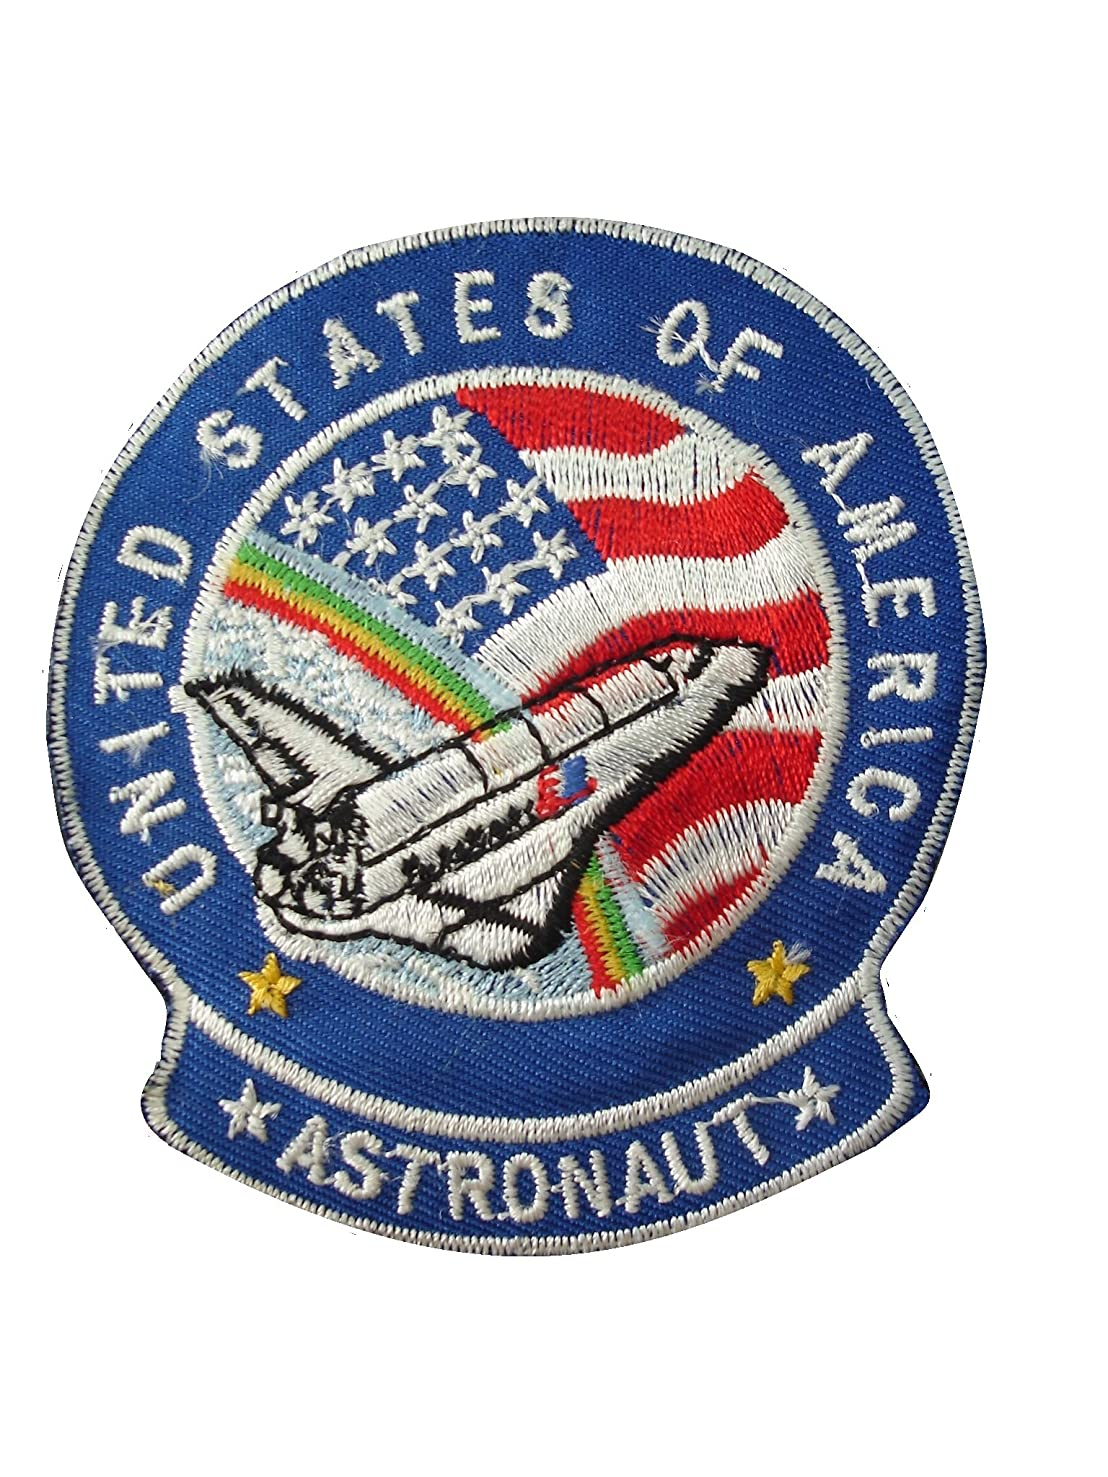 2 pieces ASTRONAUT Iron On Patch Embroidered Motif Applique NASA USA Space Mission Aeronautical Decal 3.2 x 2.9 inches (8 x 7.3 cm)